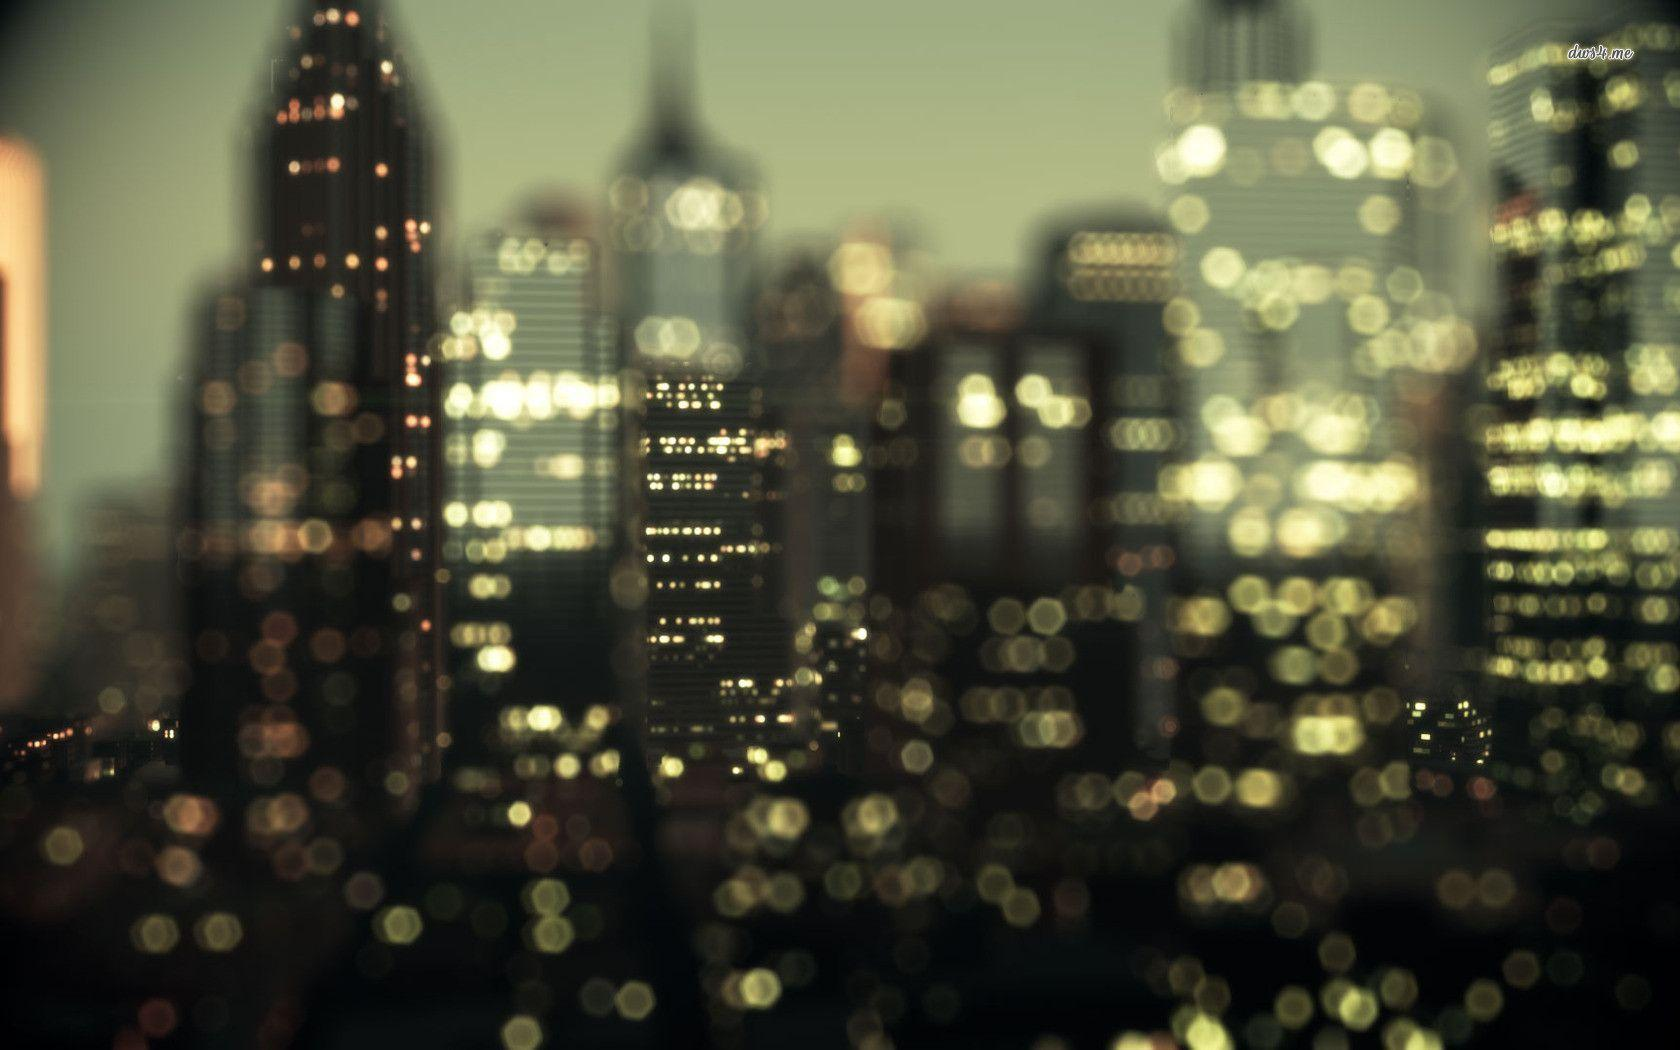 City Skyline Wallpapers - Wallpaper Cave